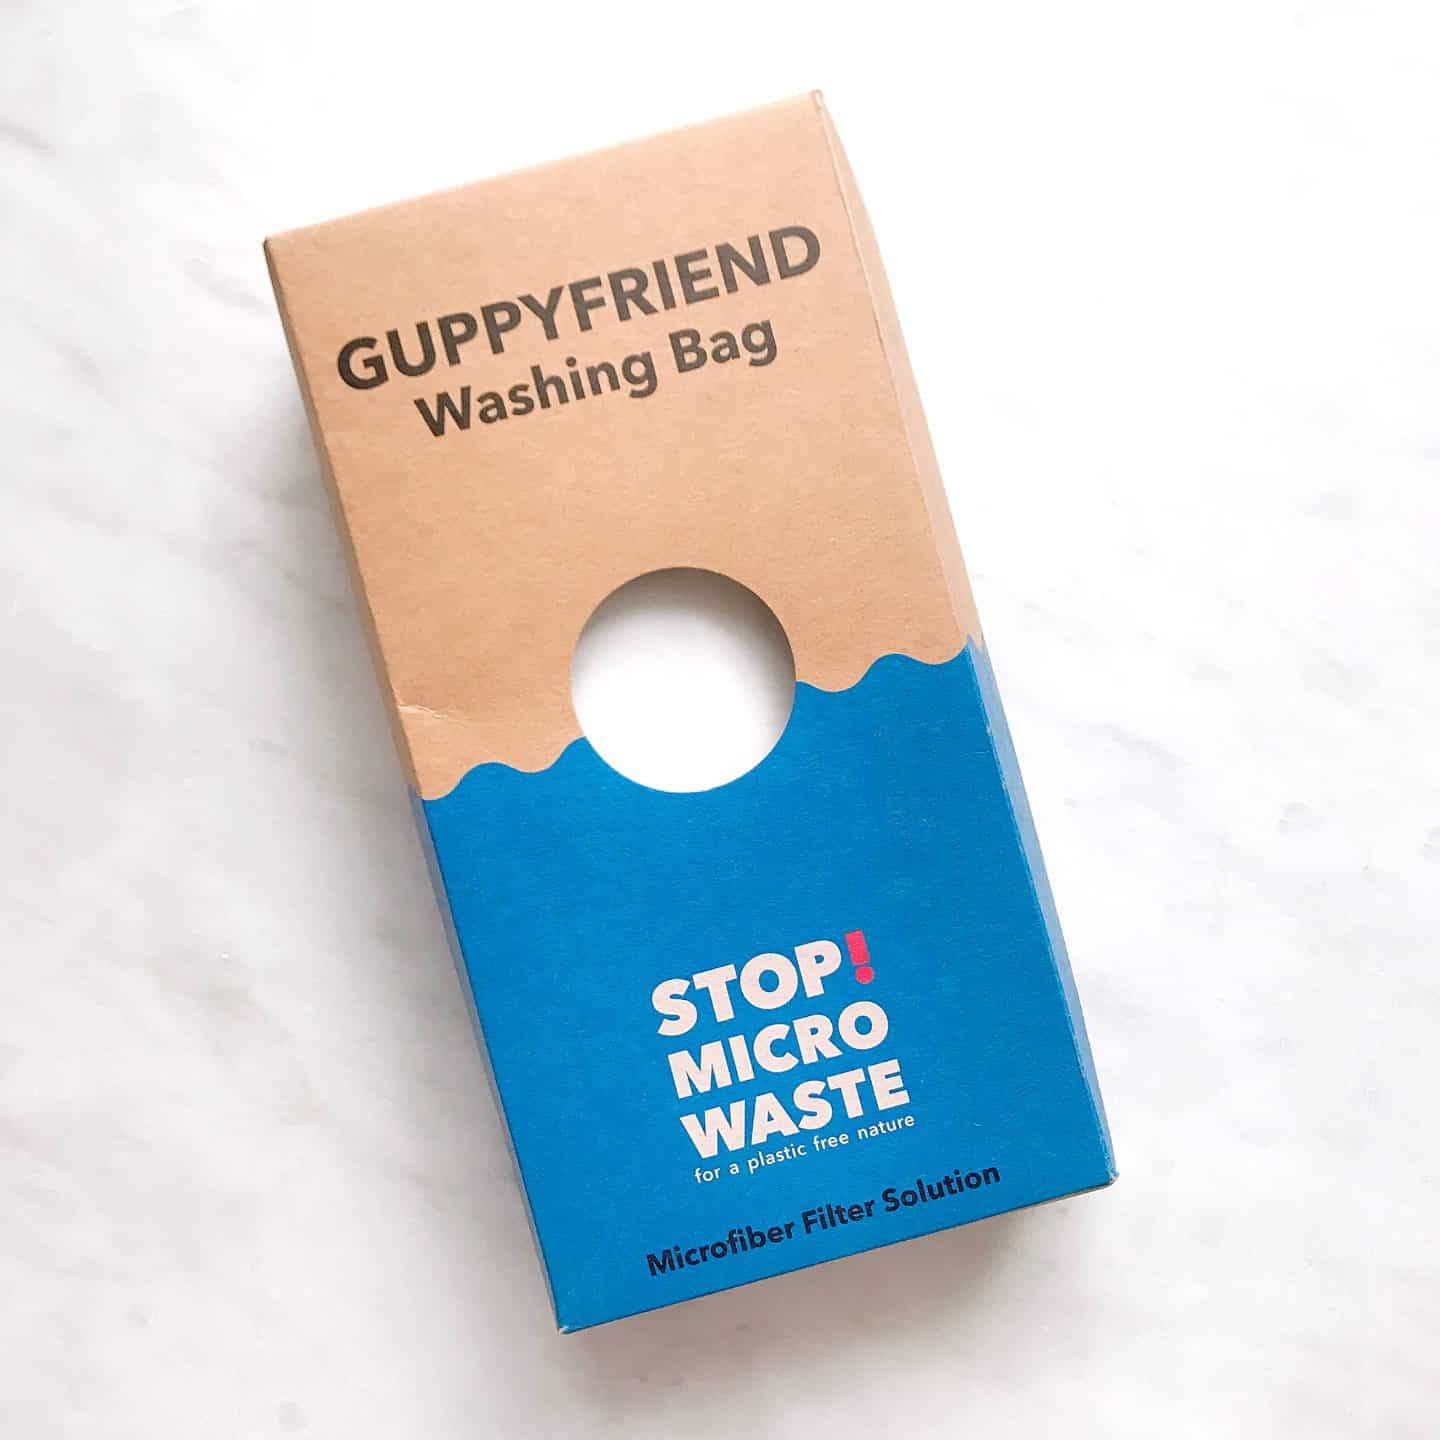 Make your washing more eco-friendly with the Guppy Friend bag